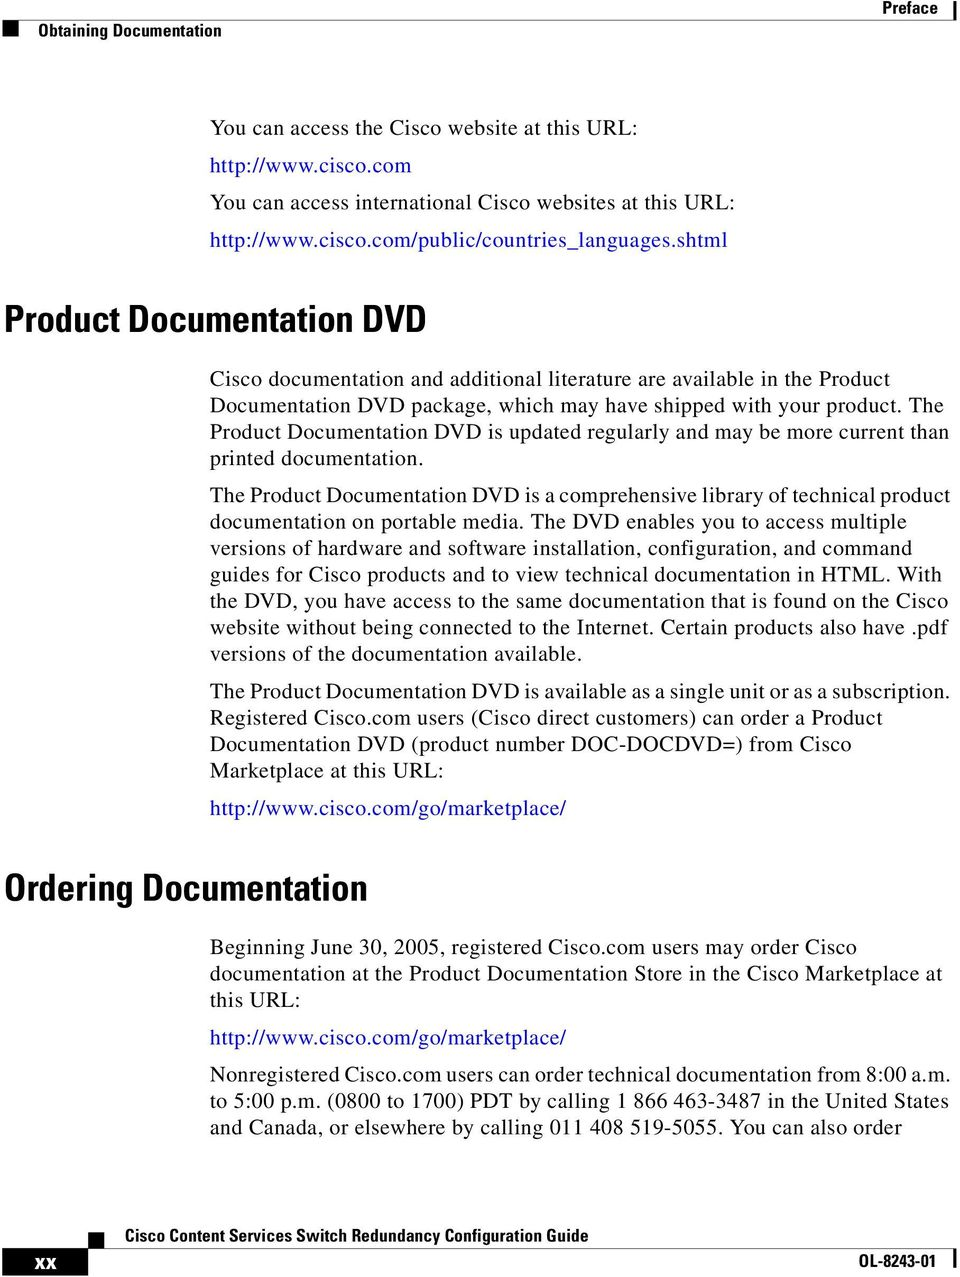 The Product Documentation DVD is updated regularly and may be more current than printed documentation.